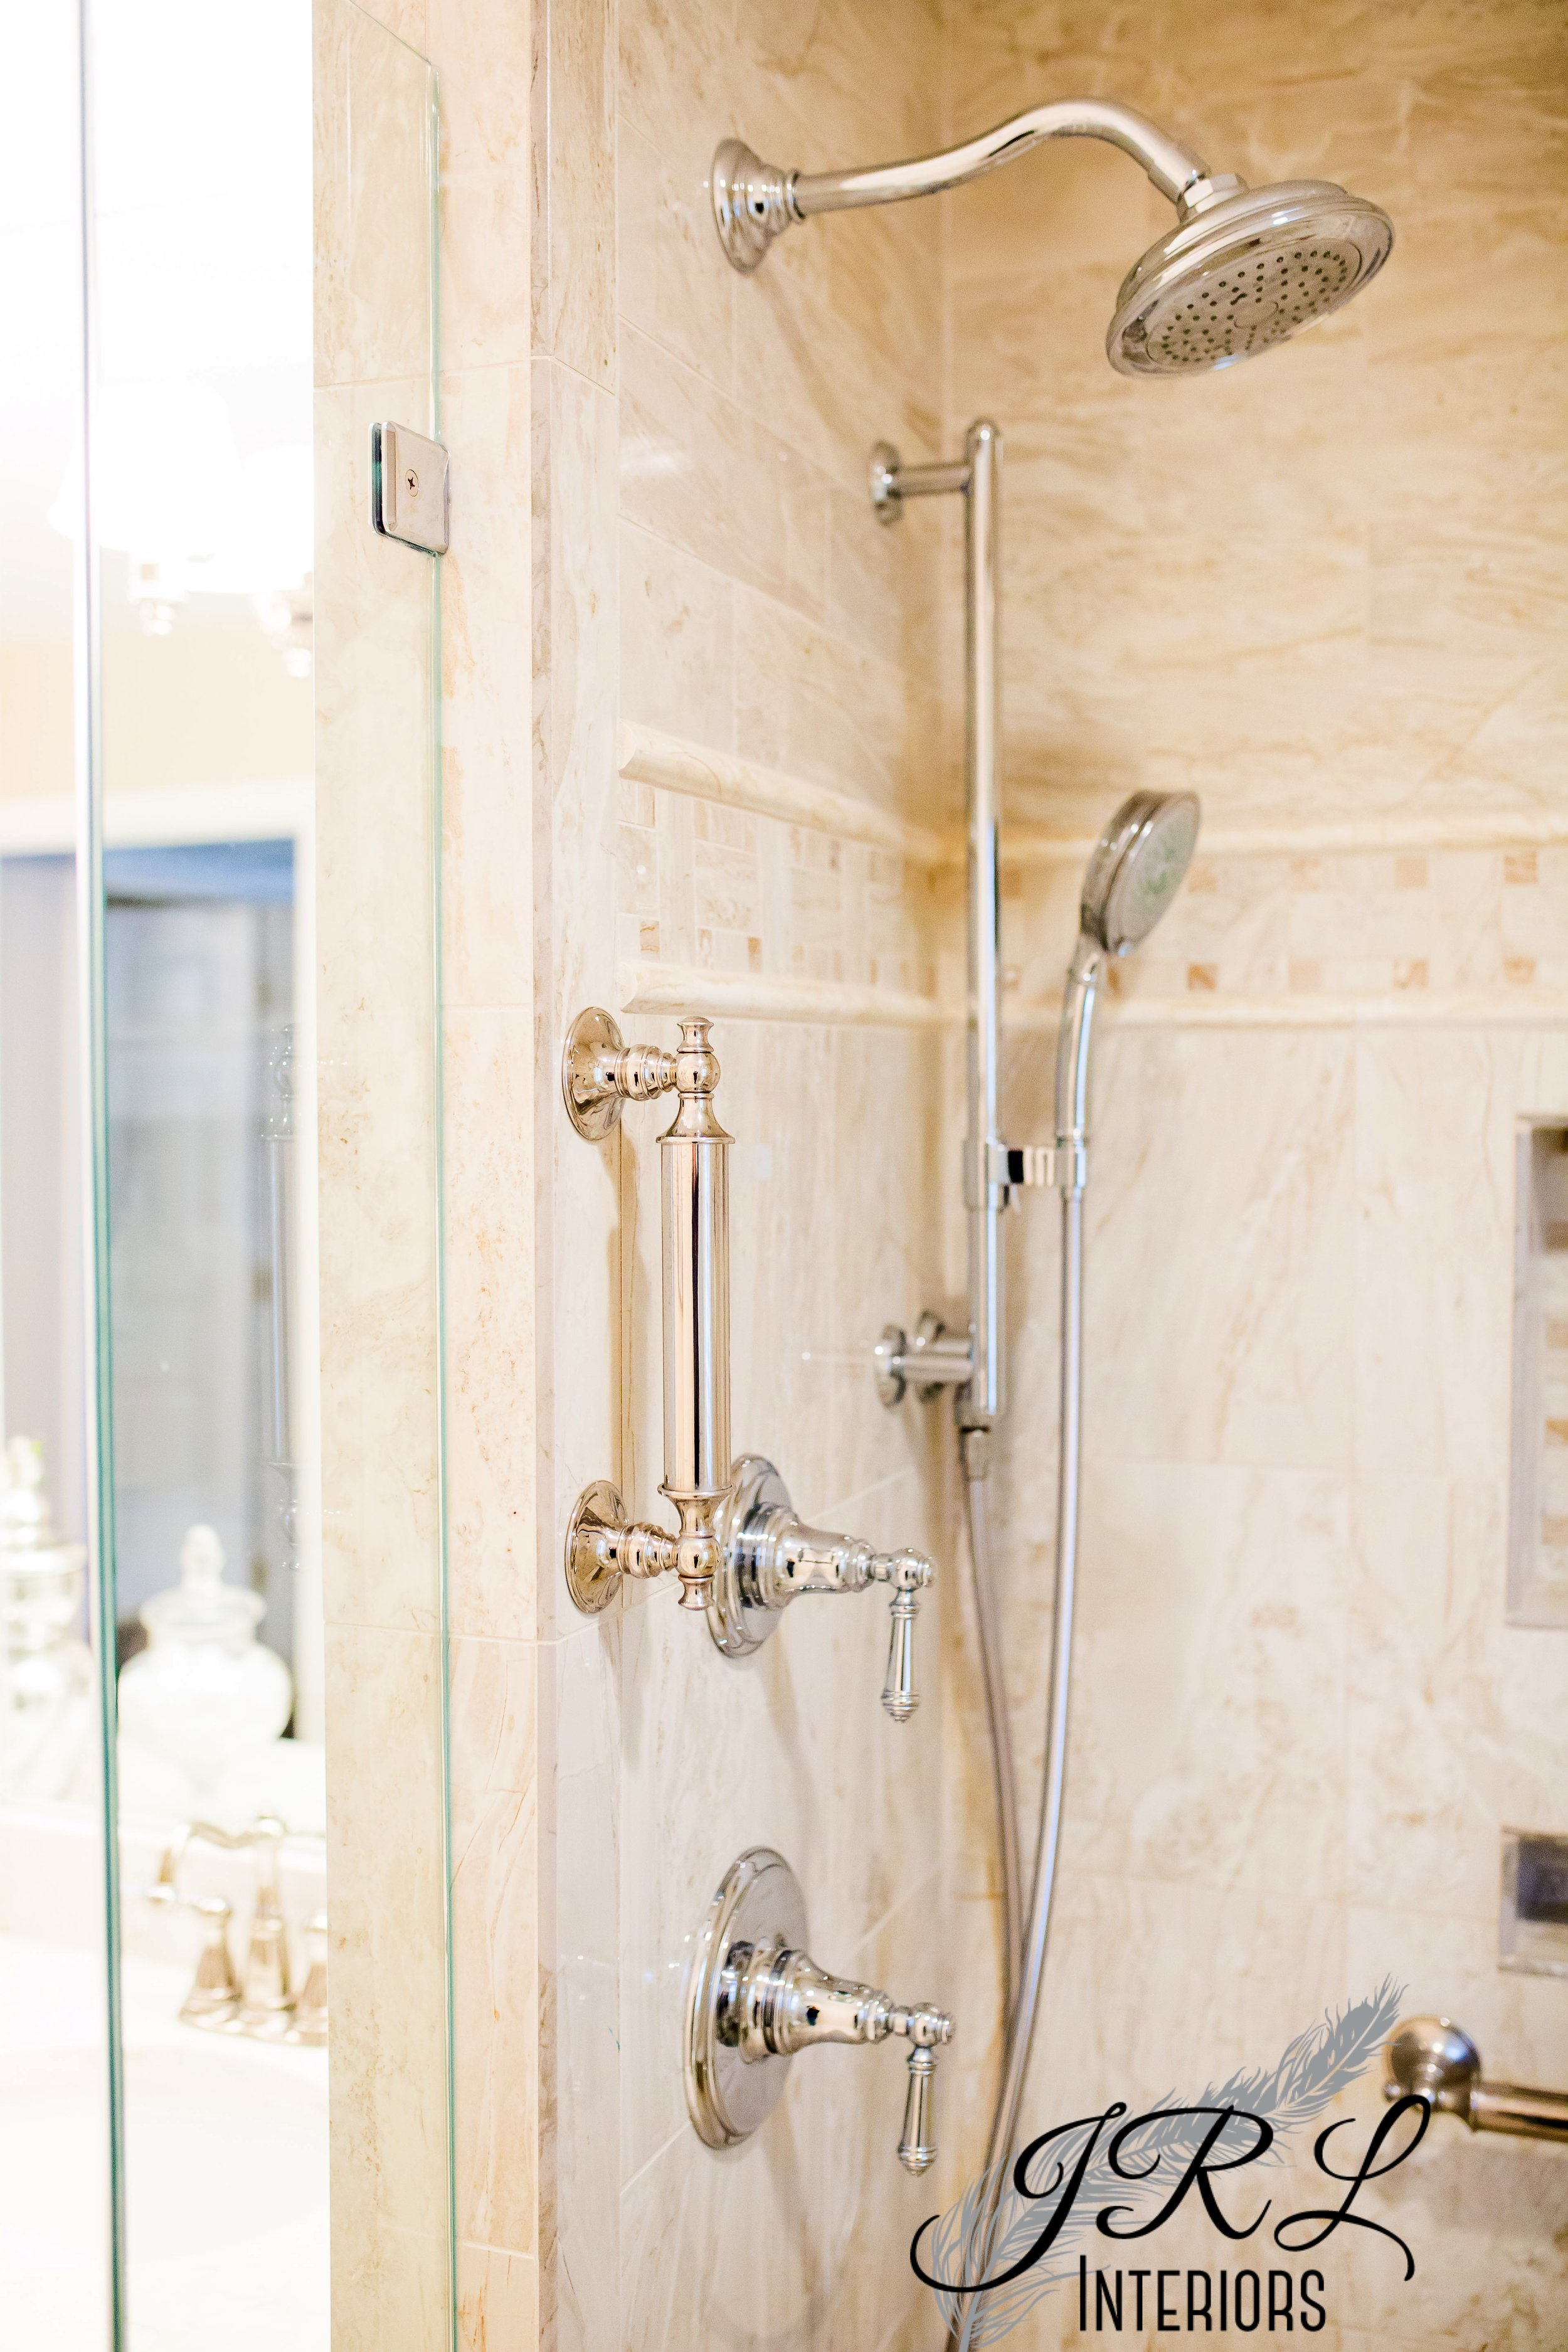 Classic chrome fittings and marble-look porcelain tile keep a timeless look in this master bath renovation